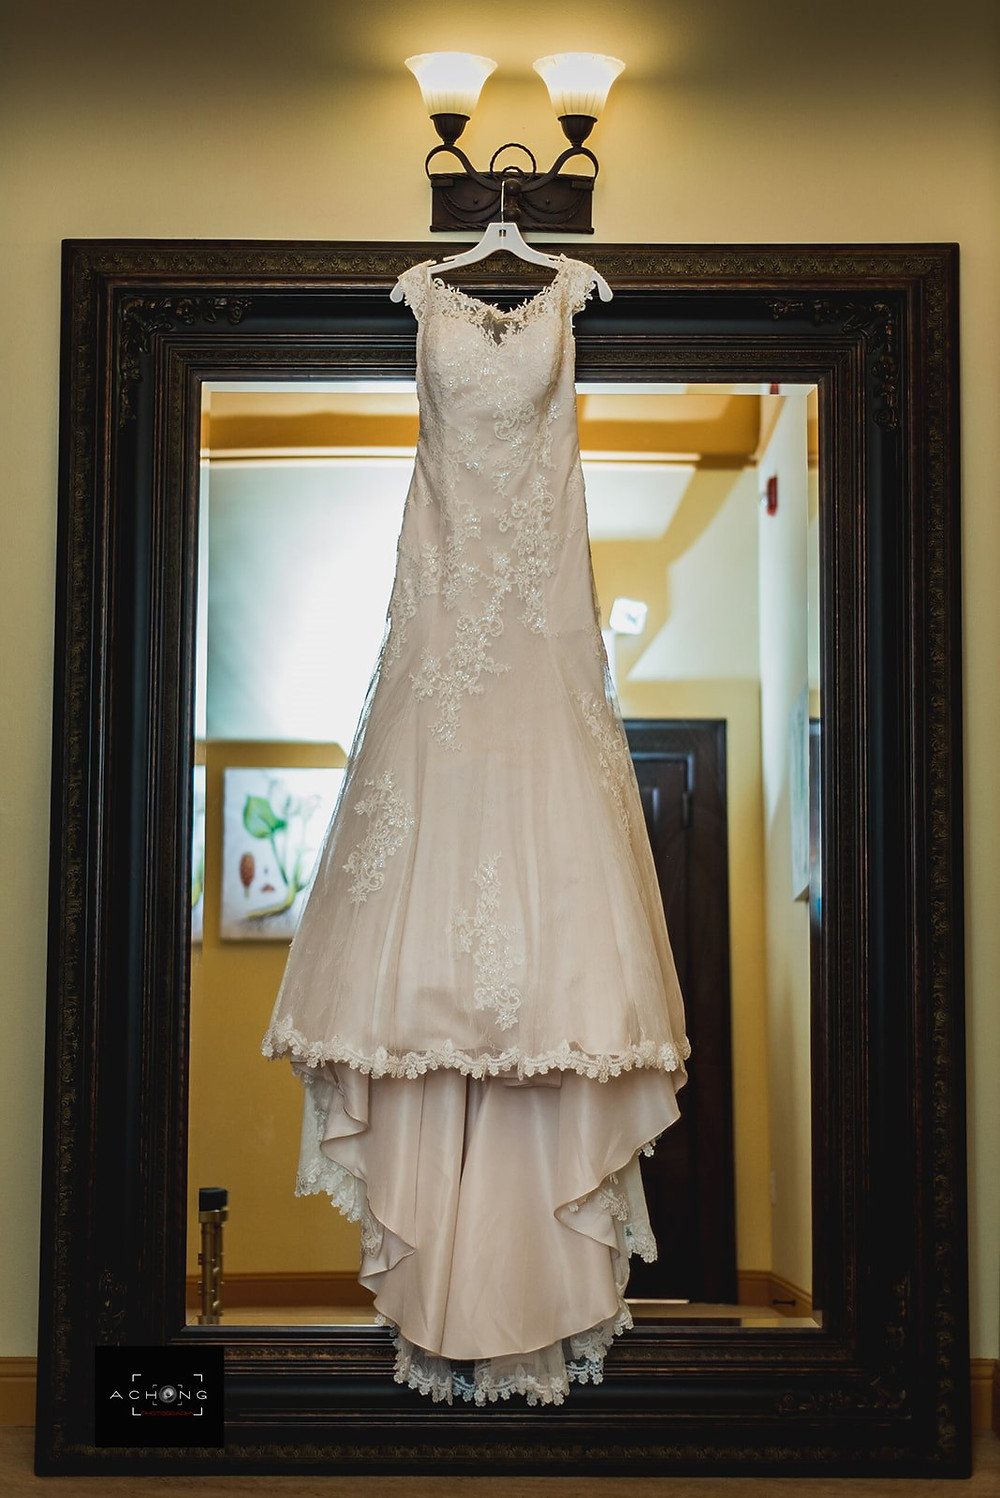 Photo of a hanging wedding dress at The Feather Ballroom in Snohomish, a wedding venue near Seattle, WA. | My Snohomish Wedding | Snohomish Wedding Planning